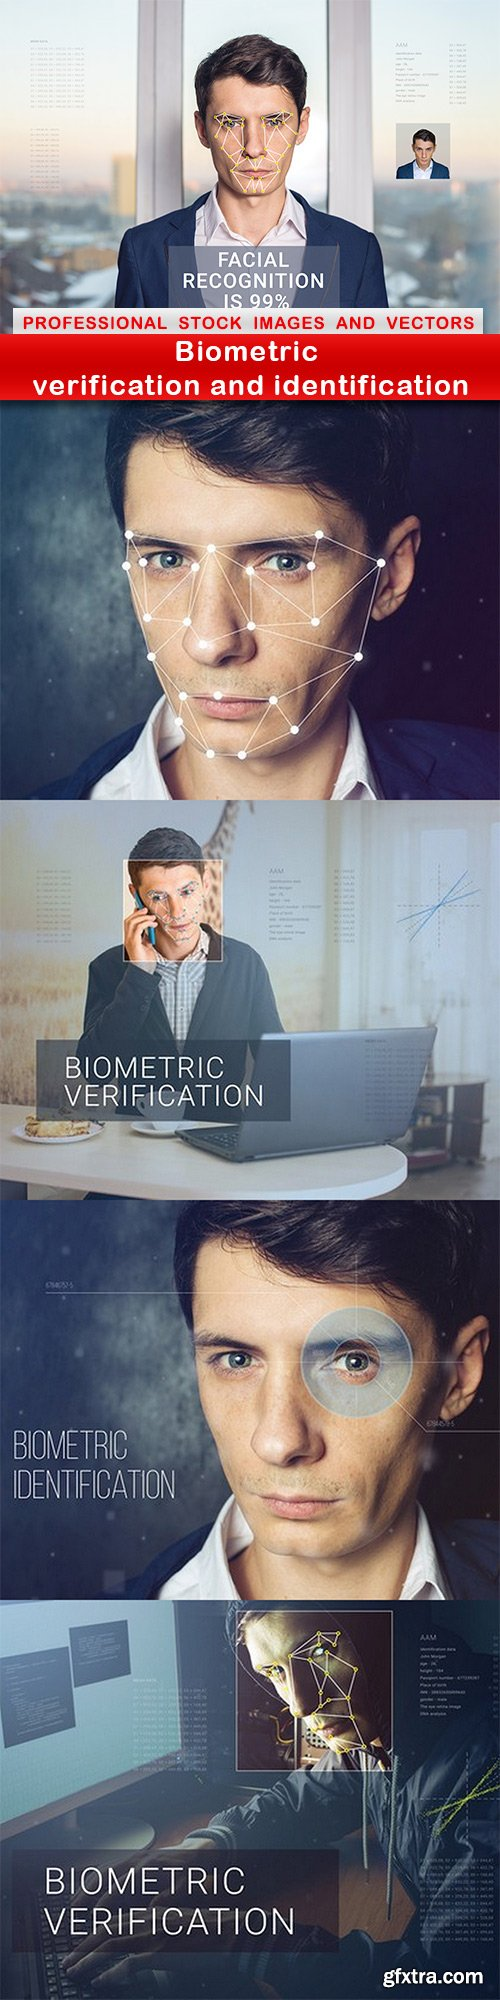 Biometric verification and identification - 5 UHQ JPEG